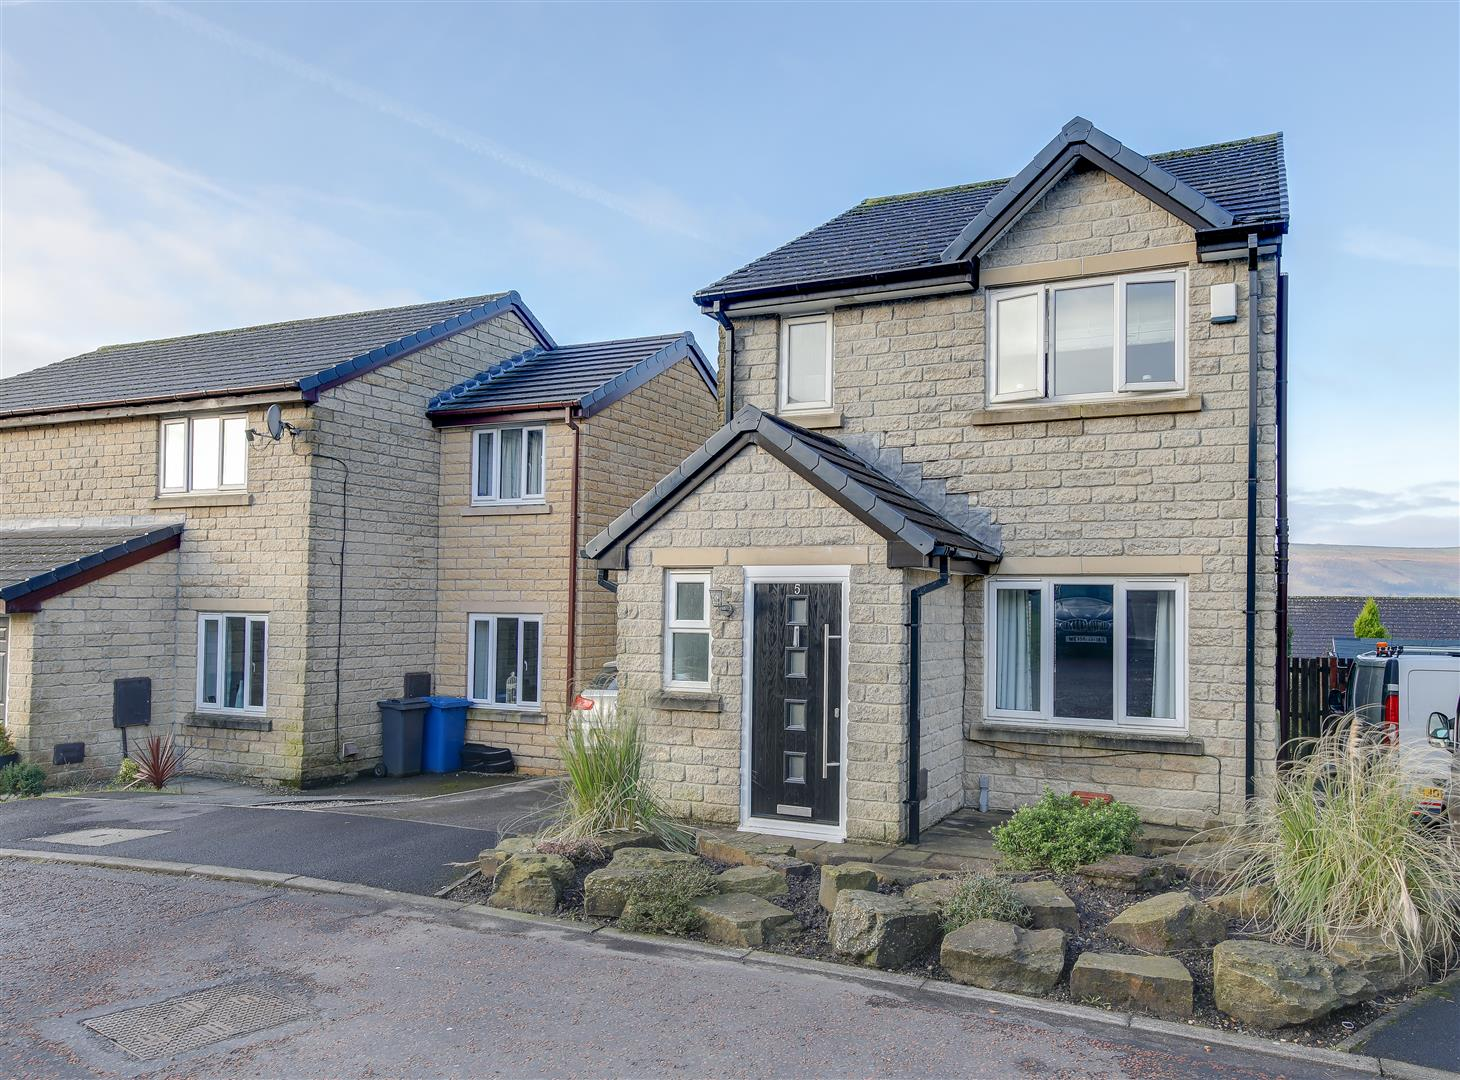 3 Bedrooms Detached House for sale in Crofters Bank, Loveclough, Rossendale